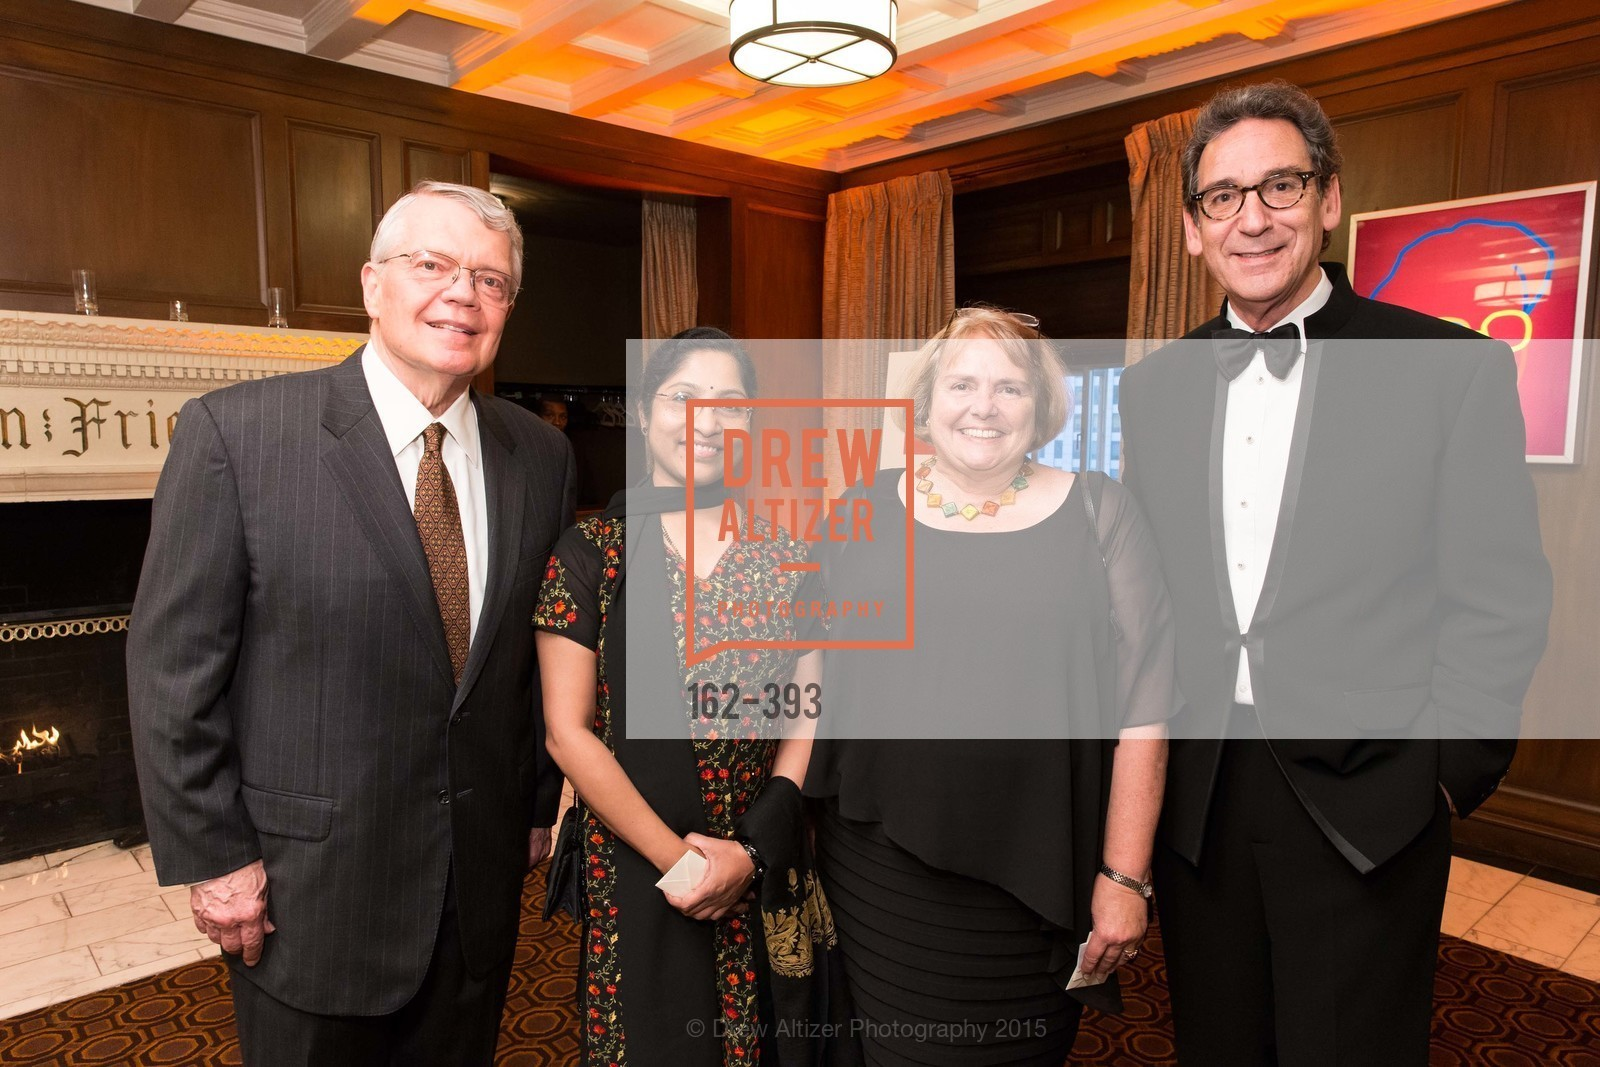 George Smith, Usha Ashok, Camilla Smith, Fred Levin, San Francisco Performances' 36th Season Gala, Merchants Exchange Building, Julia Morgan Ballroom. 465 California St, San Francisco, CA 94104, October 16th, 2015,Drew Altizer, Drew Altizer Photography, full-service agency, private events, San Francisco photographer, photographer california